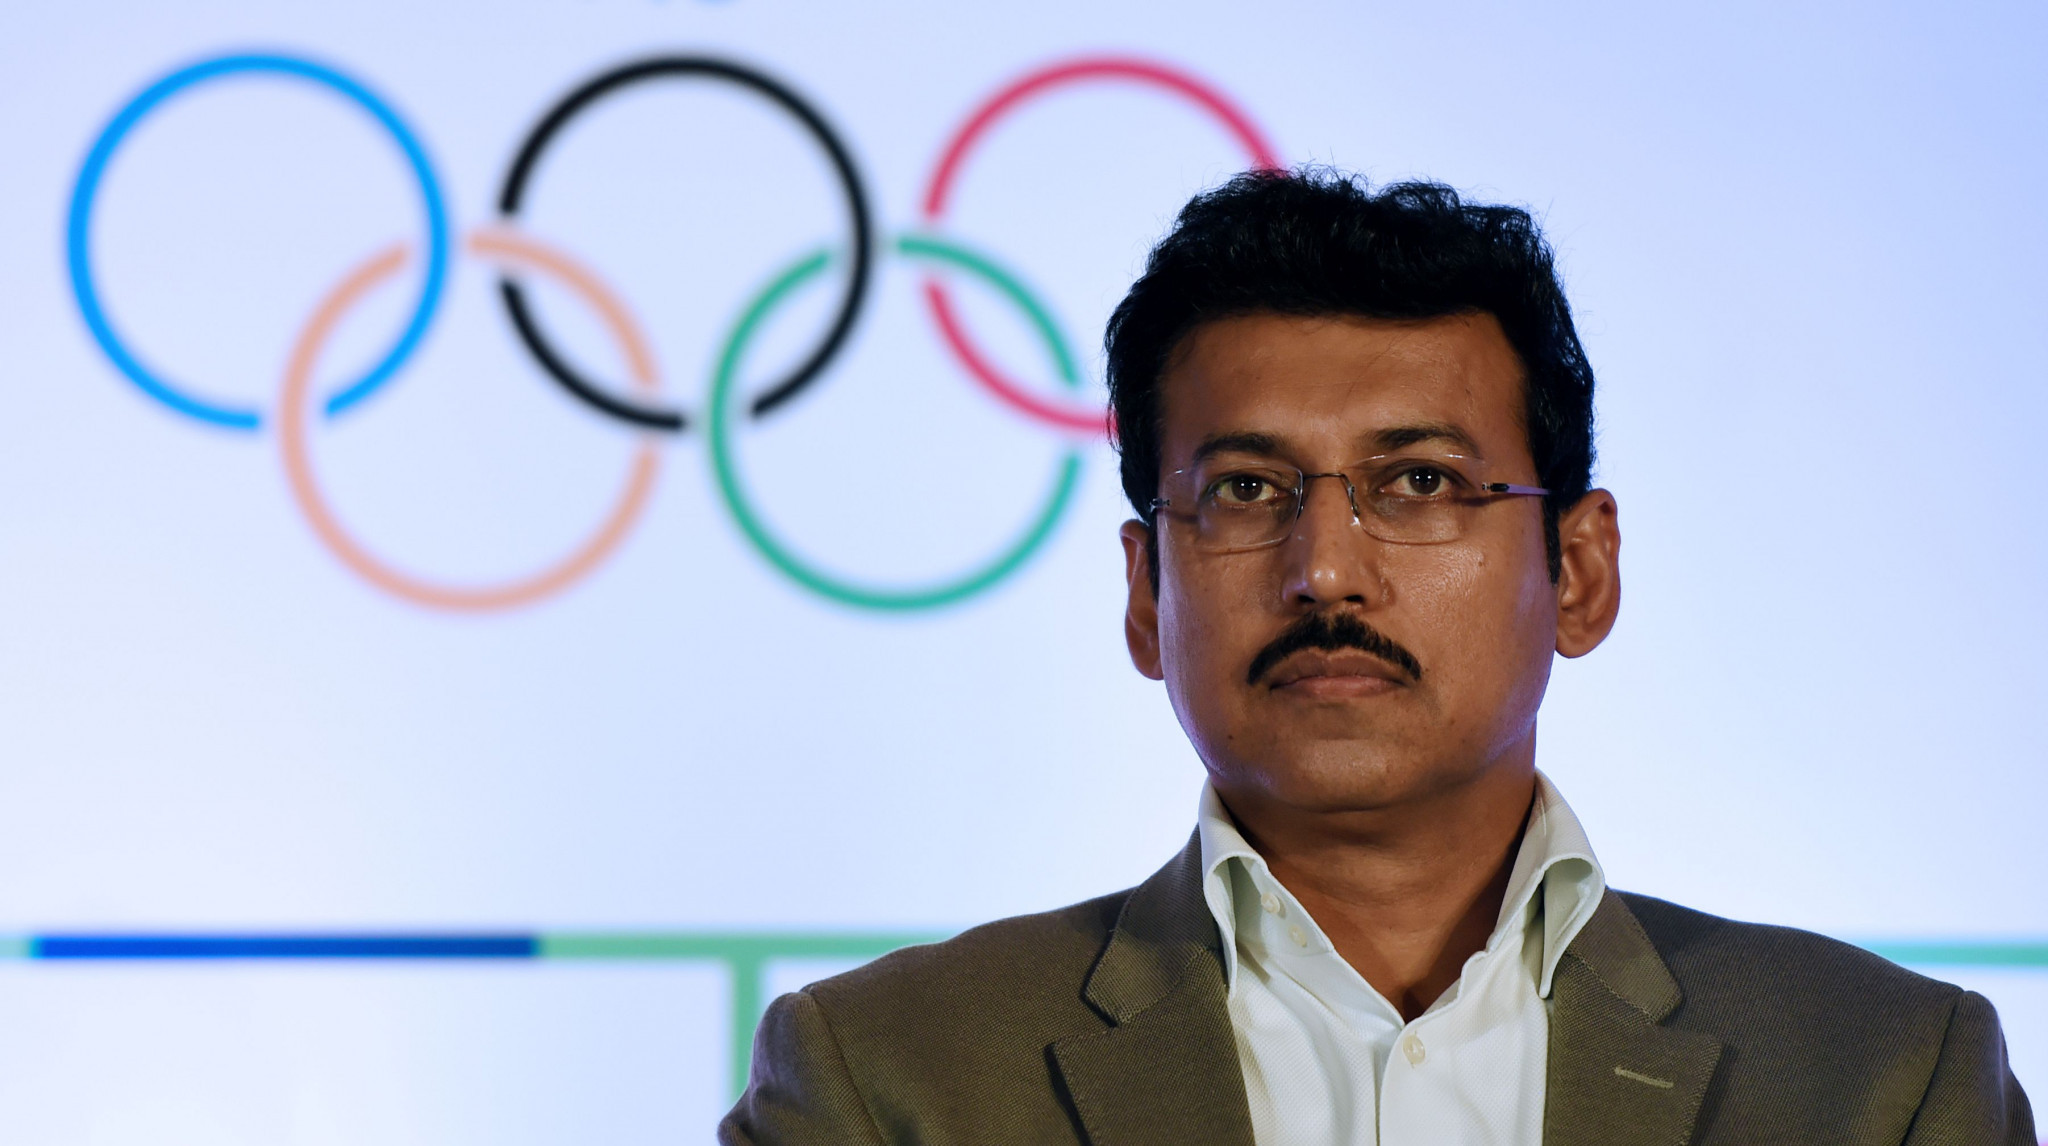 Indian Sports Minister calls on UK to include shooting at Birmingham 2022 Commonwealth Games